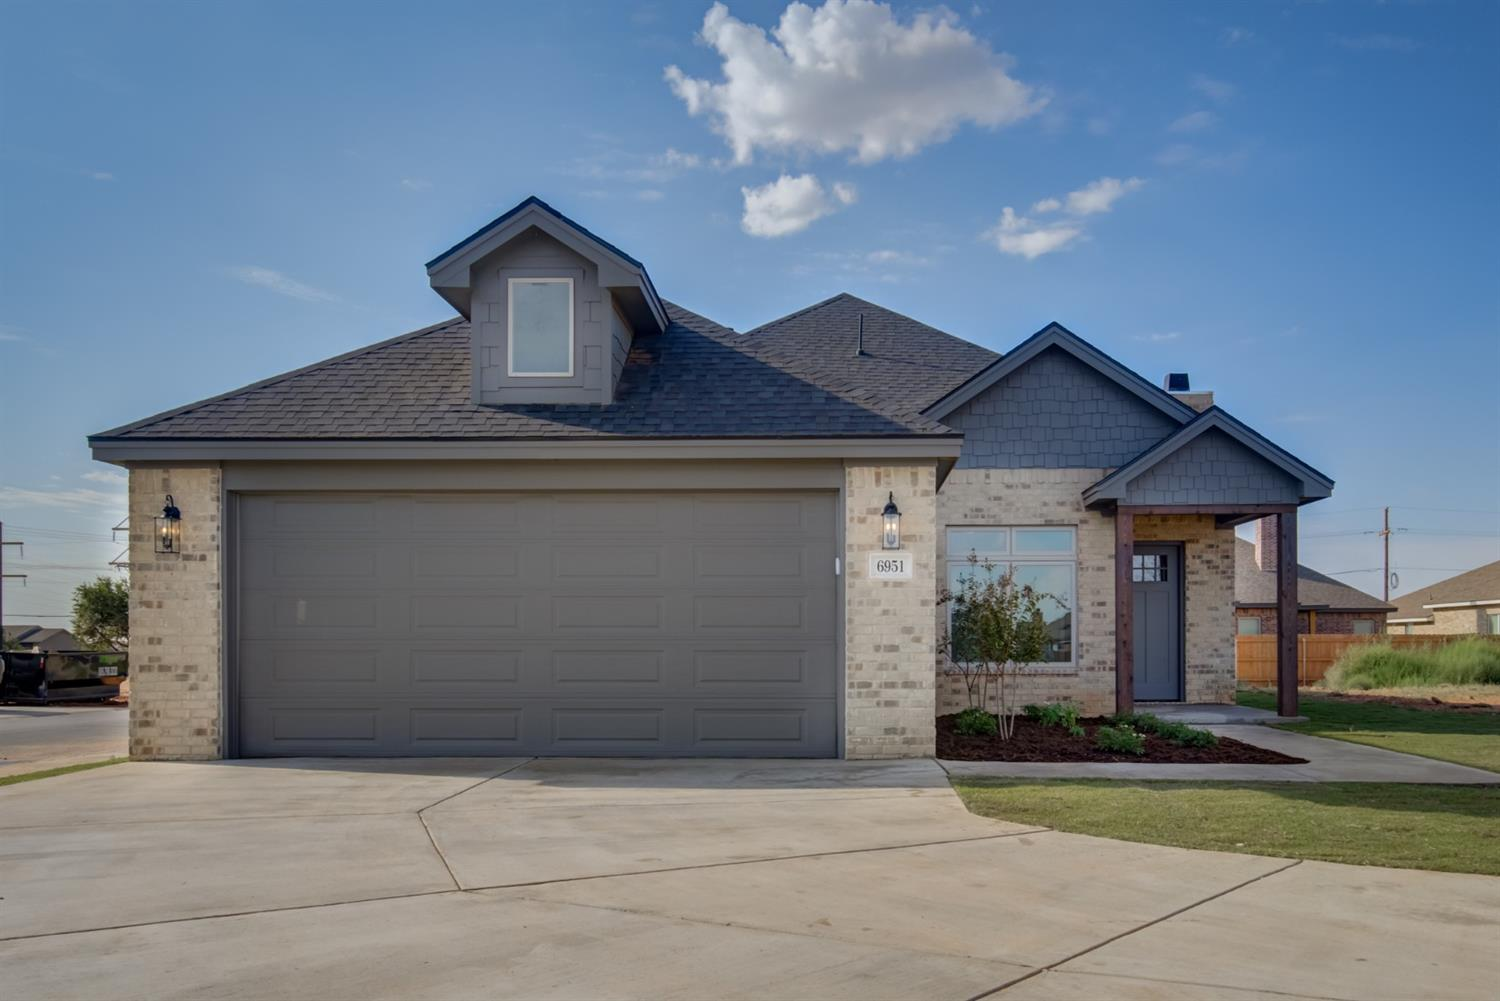 This home is now complete and ready for new owner.Great 4 bedroom, 2 bathroom HOME in the new Bushland Springs at 19th and Upland.    Vaulted living room ceiling with wood burning fireplace. Kitchen has great cabinet space and a large island. Master bedroom is isolated at the back of the house. Master bath is good size and features his and her vanity's, a walk in shower and a big closet. Pictures are of the model home, actual house will have some different finishes, still time to make your own selections.